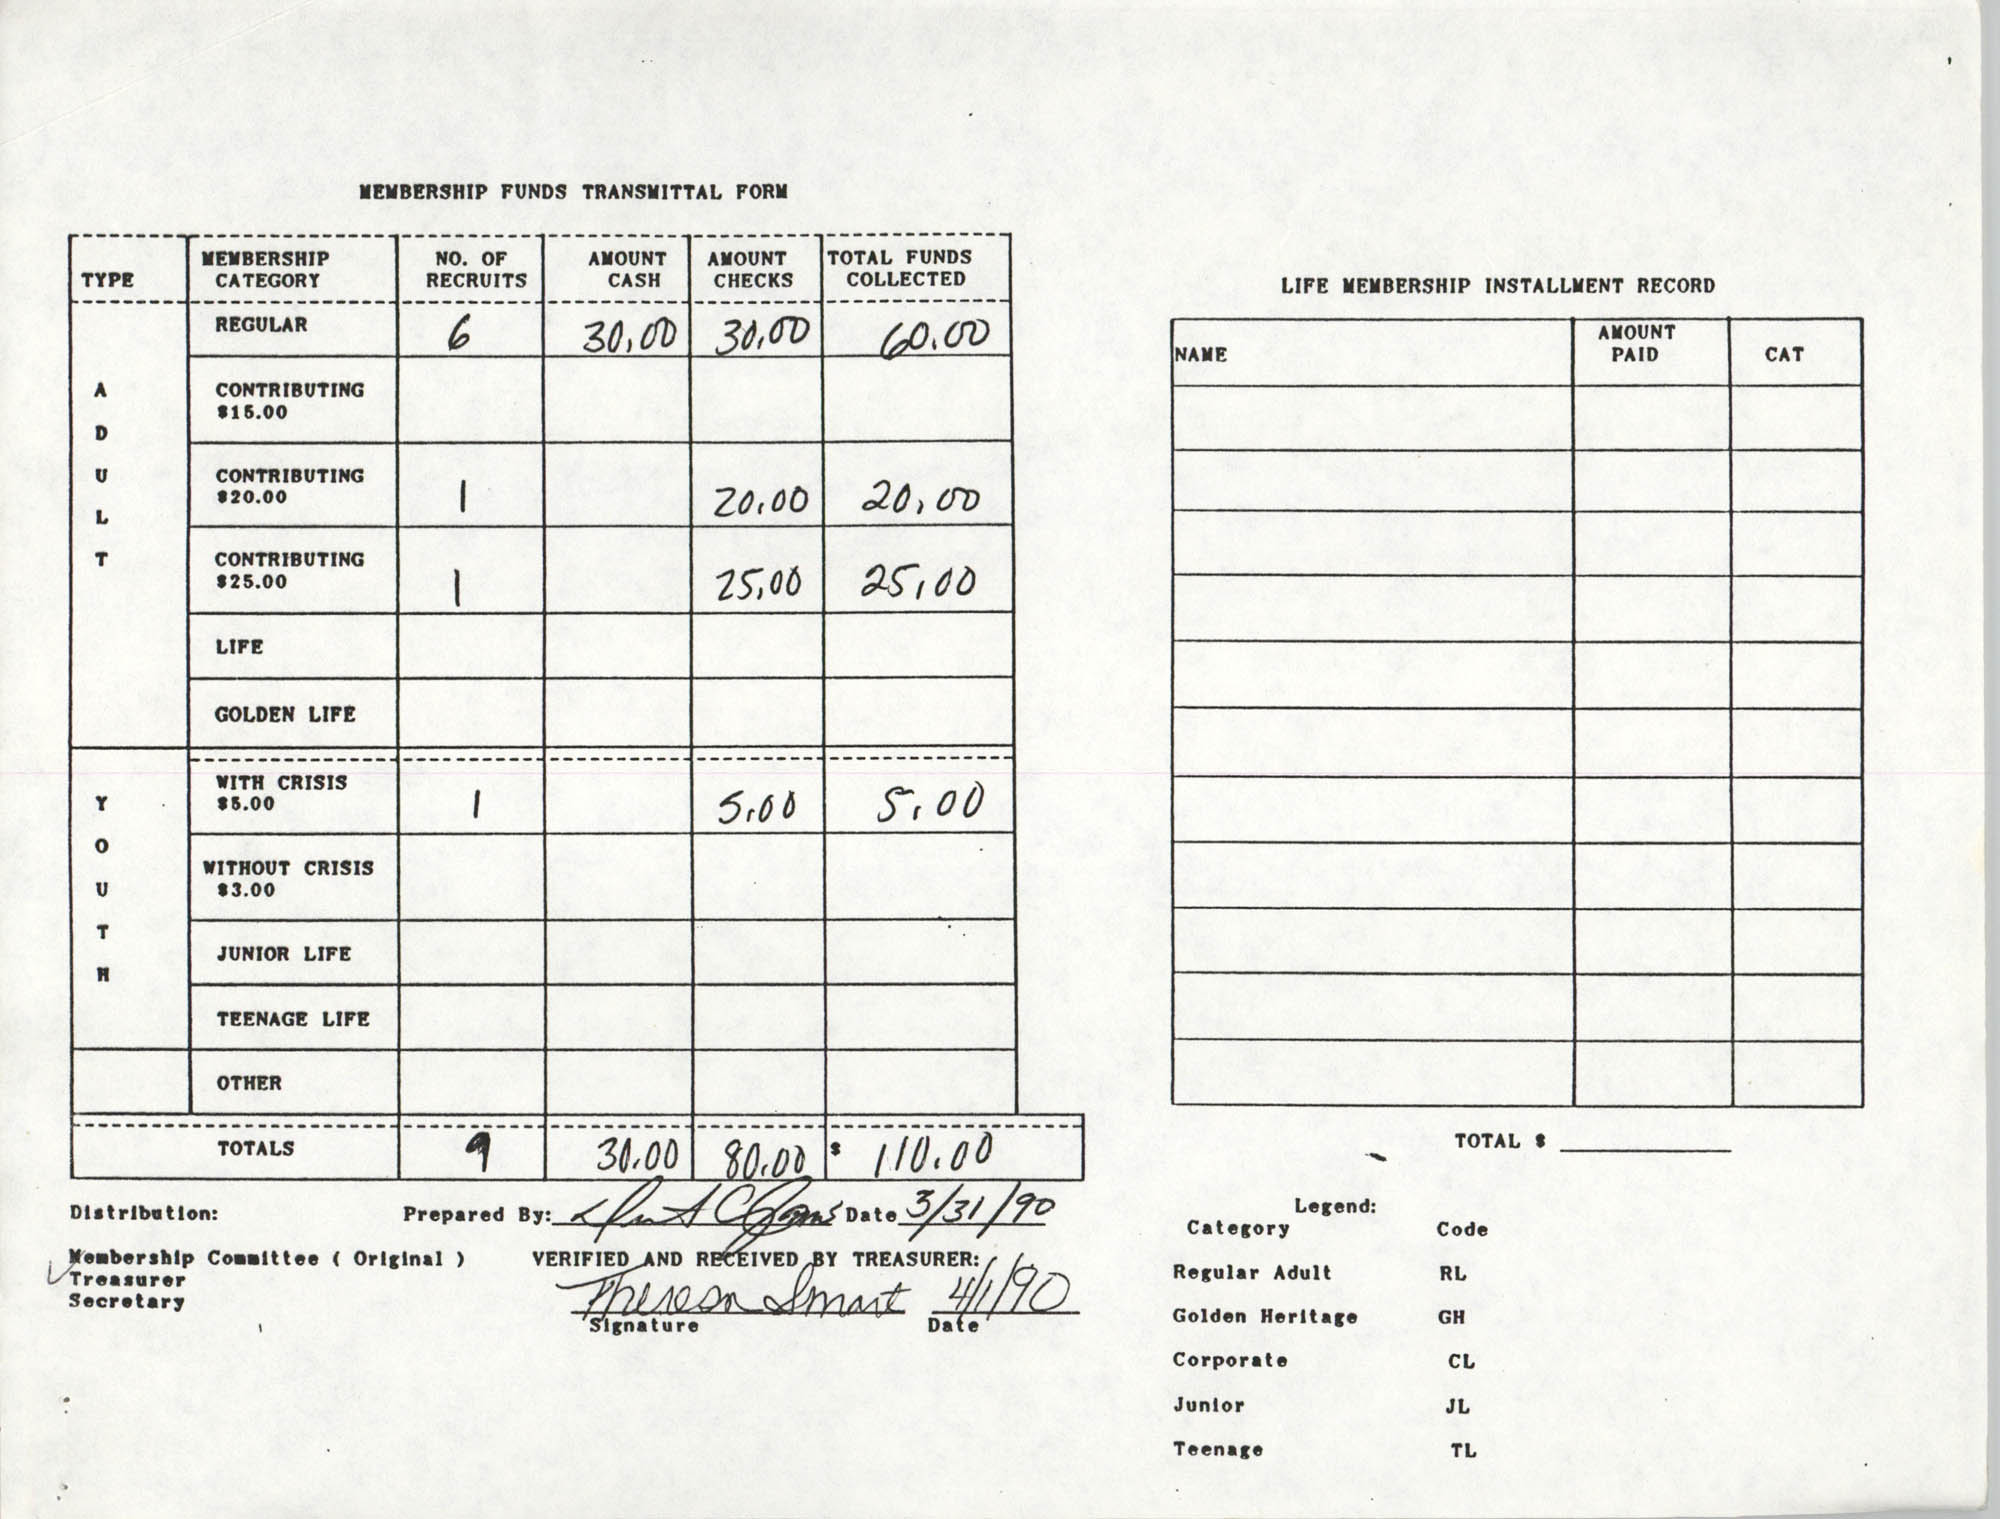 Charleston Branch of the NAACP Membership Funds Transmittal Form, April 1990, Page 1